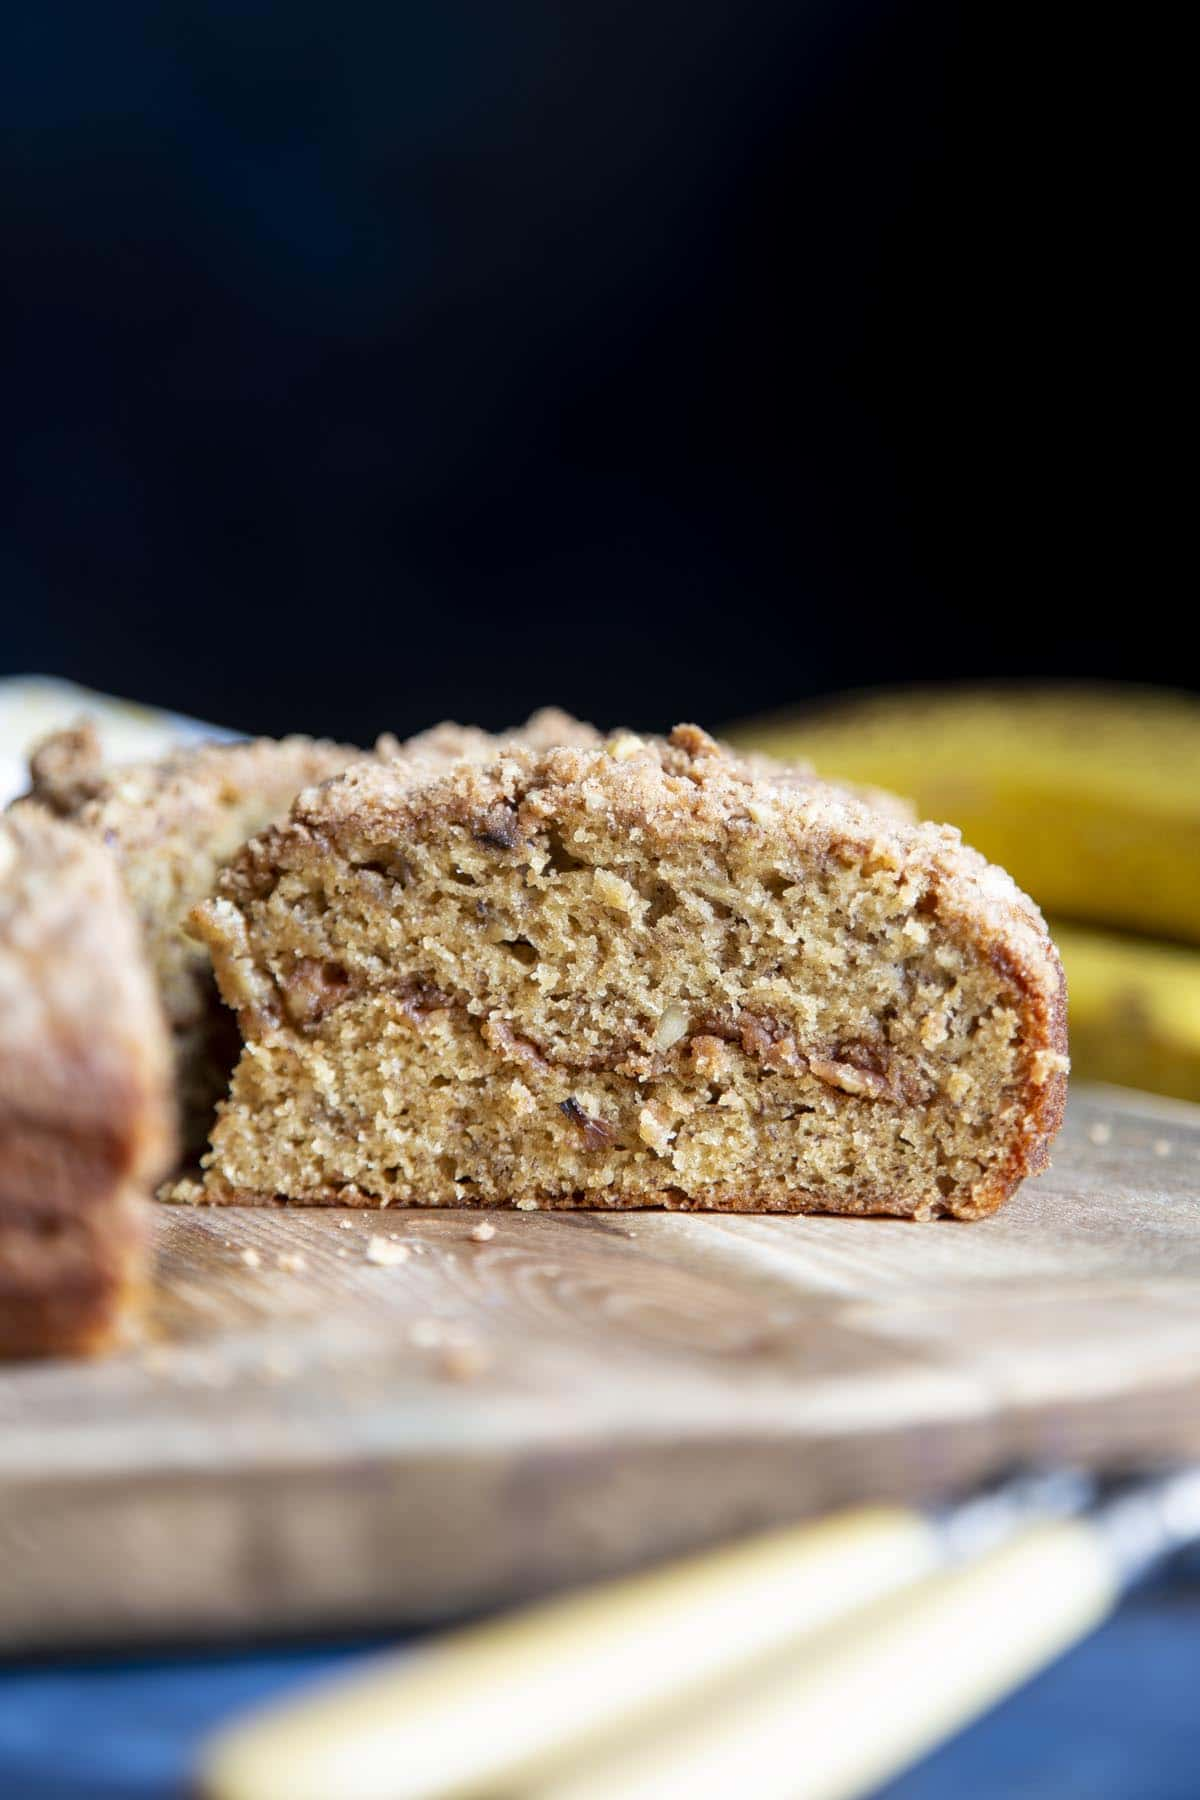 A slice of banana coffee cake with streusel running through the middle.